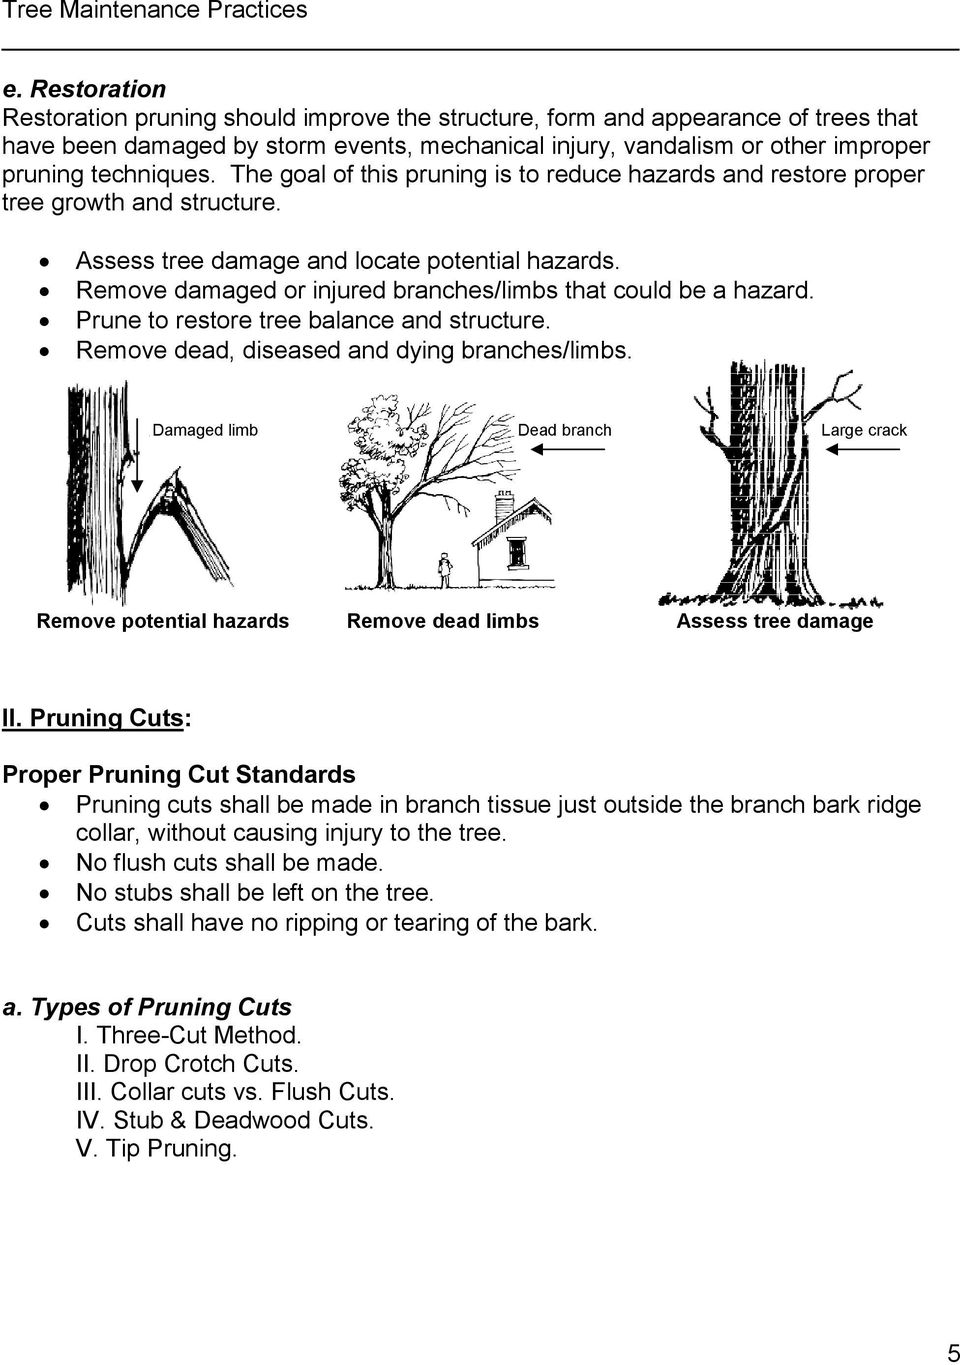 Remove damaged or injured branches/limbs that could be a hazard. Prune to restore tree balance and structure. Remove dead, diseased and dying branches/limbs.